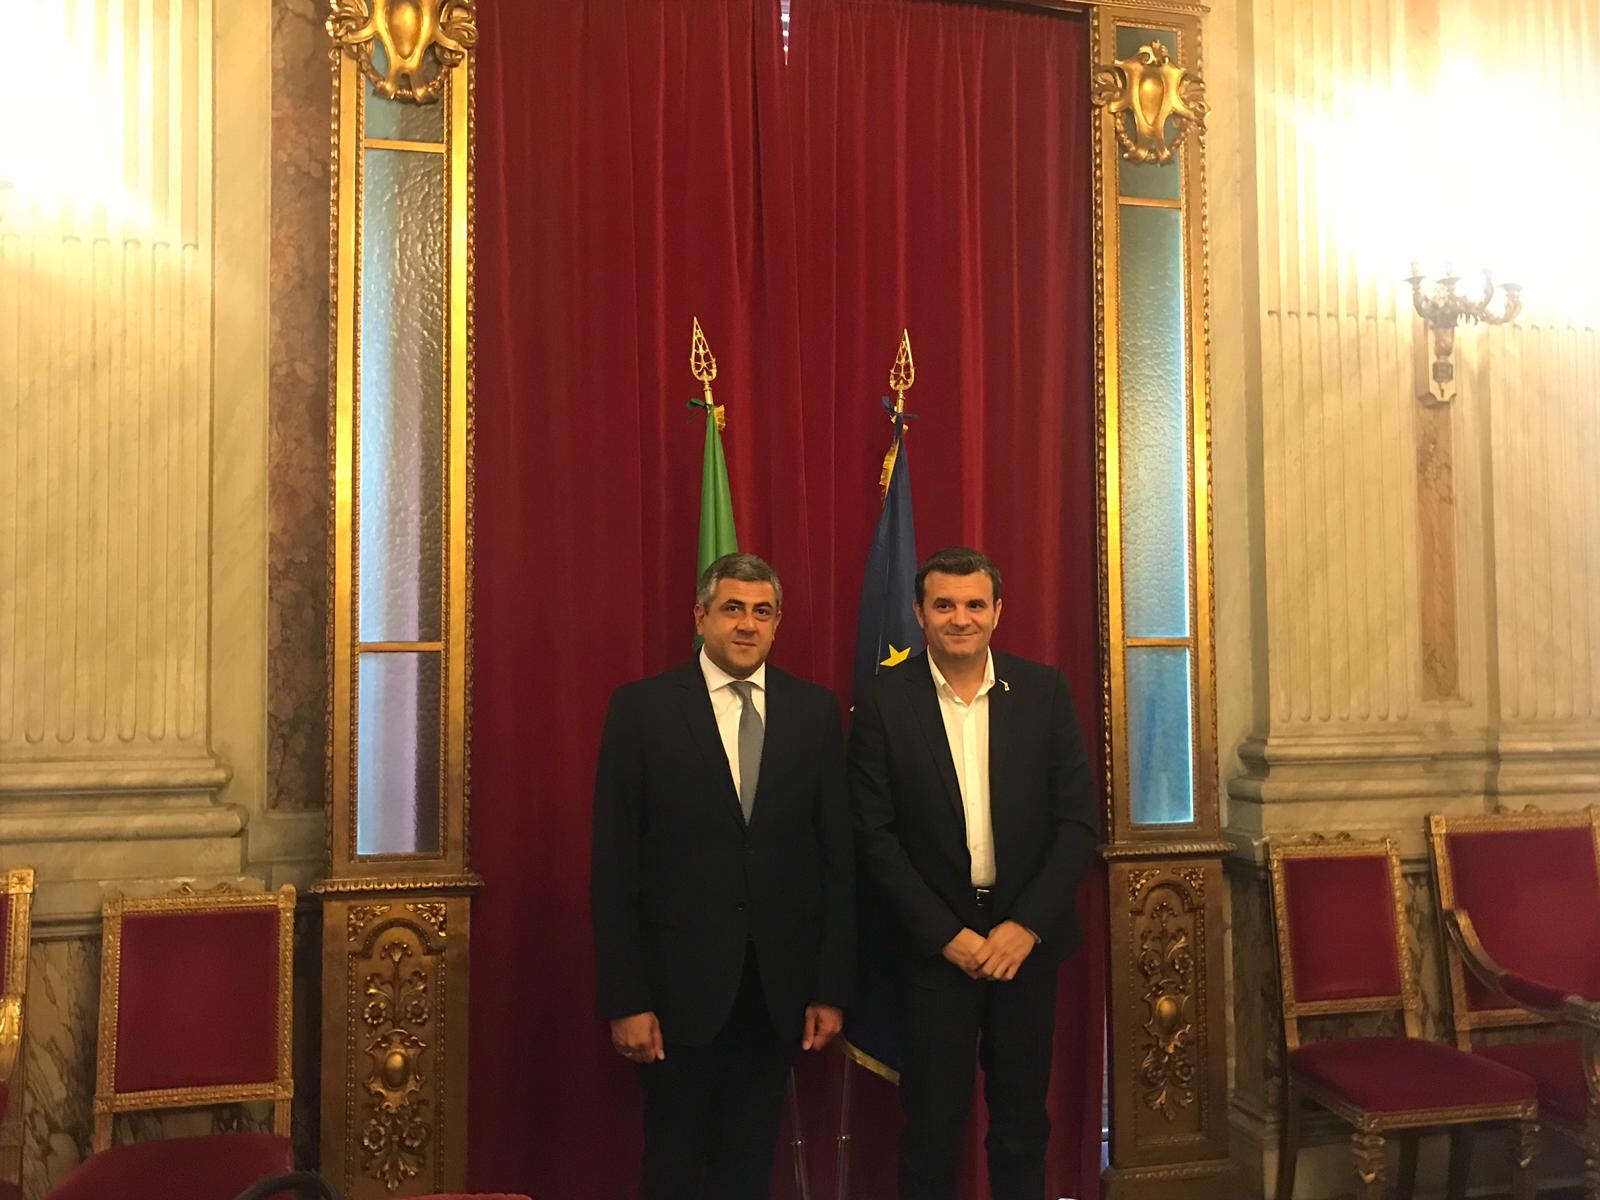 UNWTO Secretary-General embarks on official visit to Italy